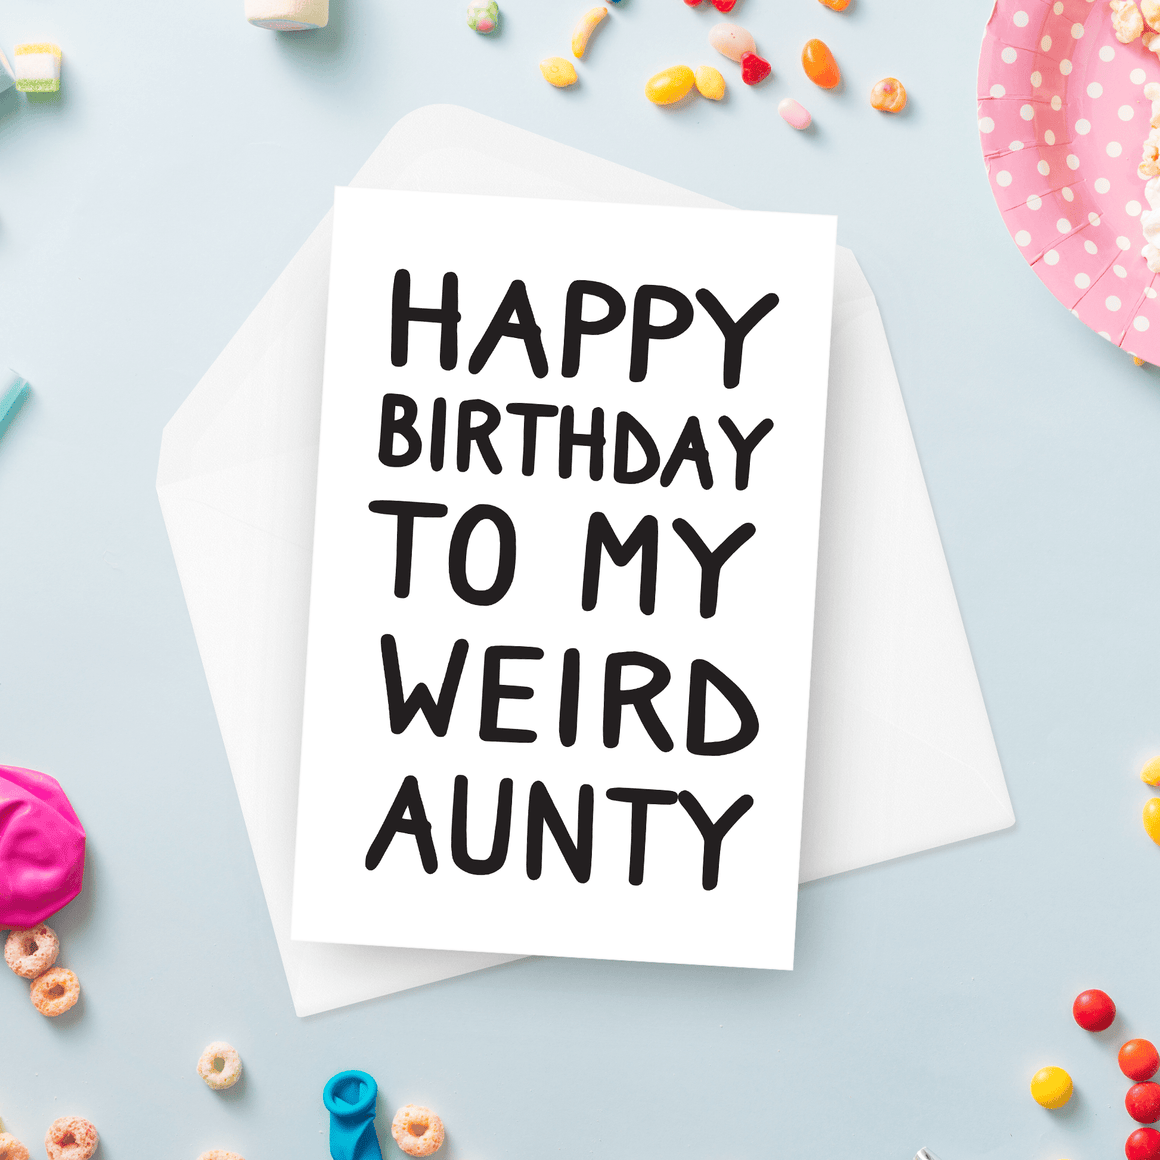 Happy Birthday To My Weird Aunty Card